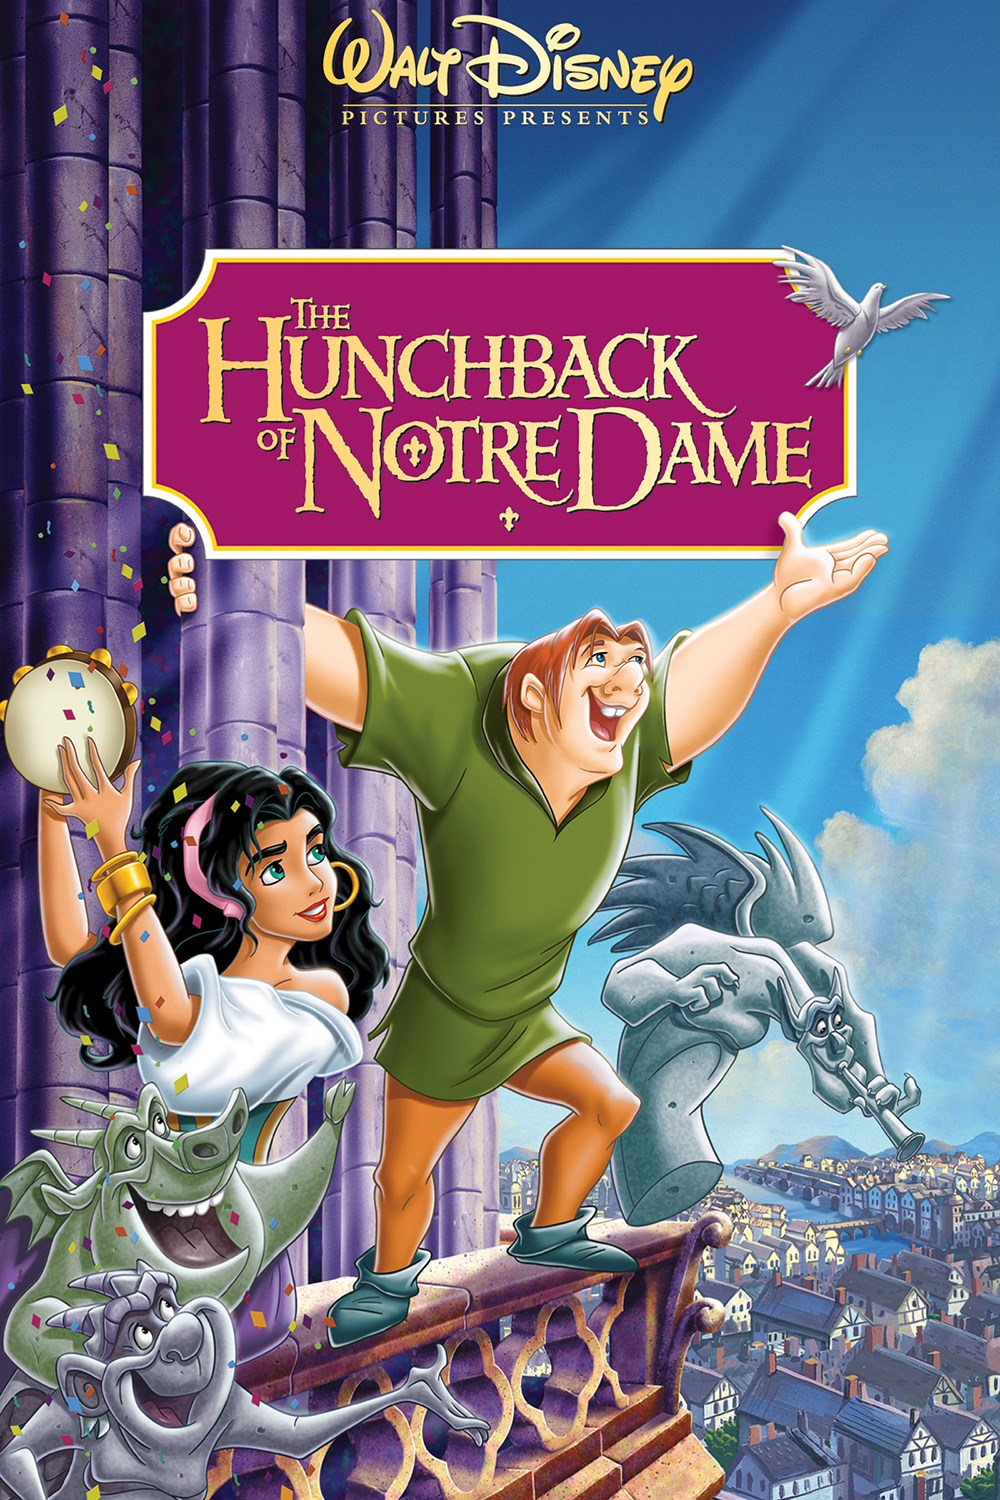 an analysis of the topic of the hunchback of notre dame Immediately download the the hunchback of notre dame summary, chapter-by-chapter analysis, book notes, essays, quotes, character descriptions, lesson plans, and more - everything you need for studying or teaching the hunchback of notre dame.